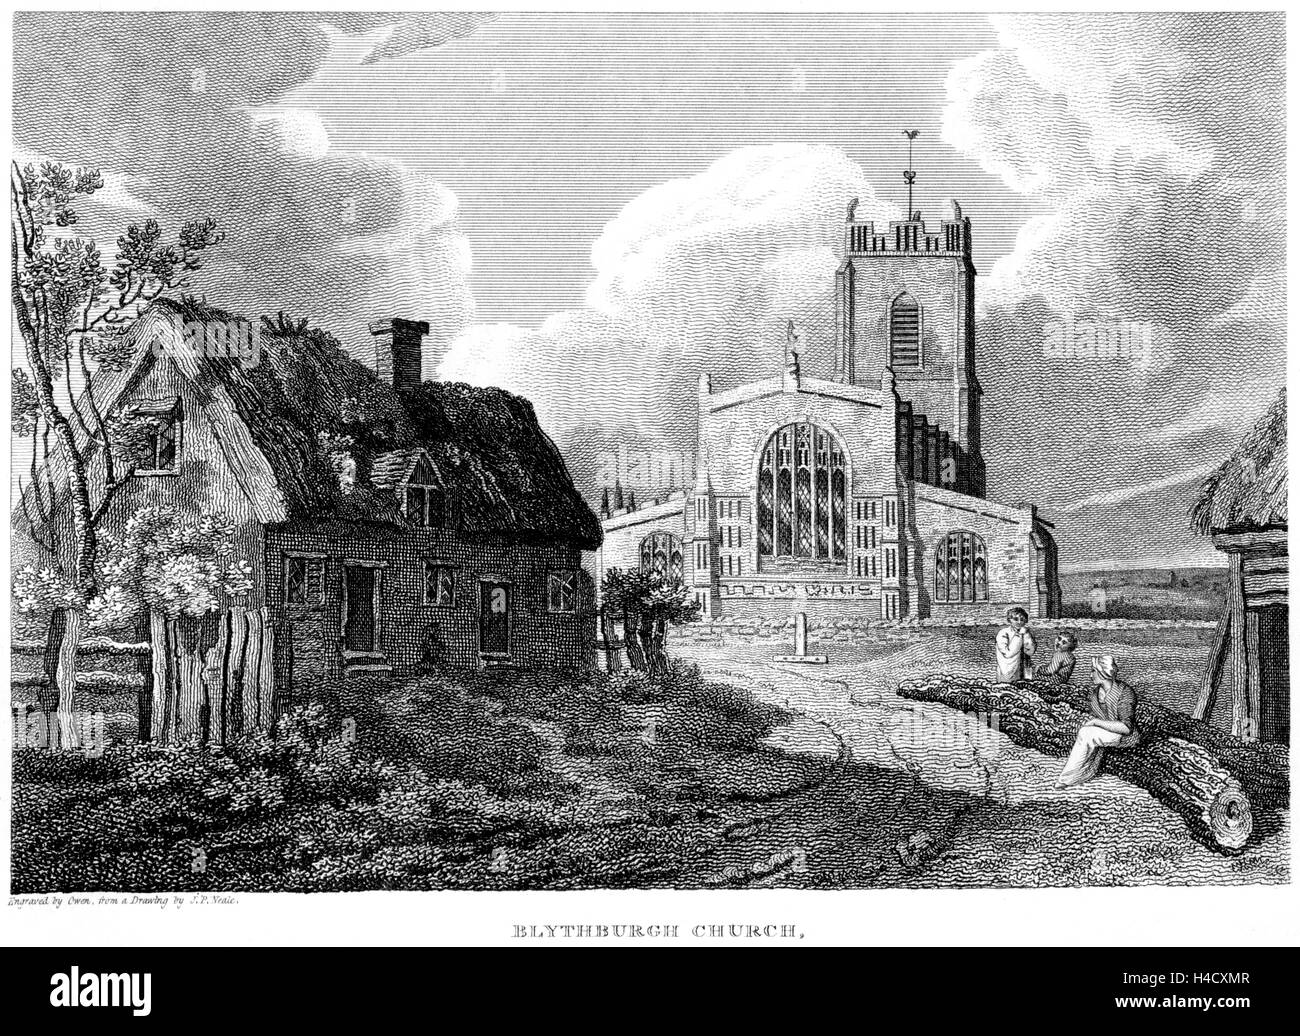 An engraving of Blythburgh Church, Suffolk scanned at high resolution from a book printed in 1812. Believed copyright - Stock Image